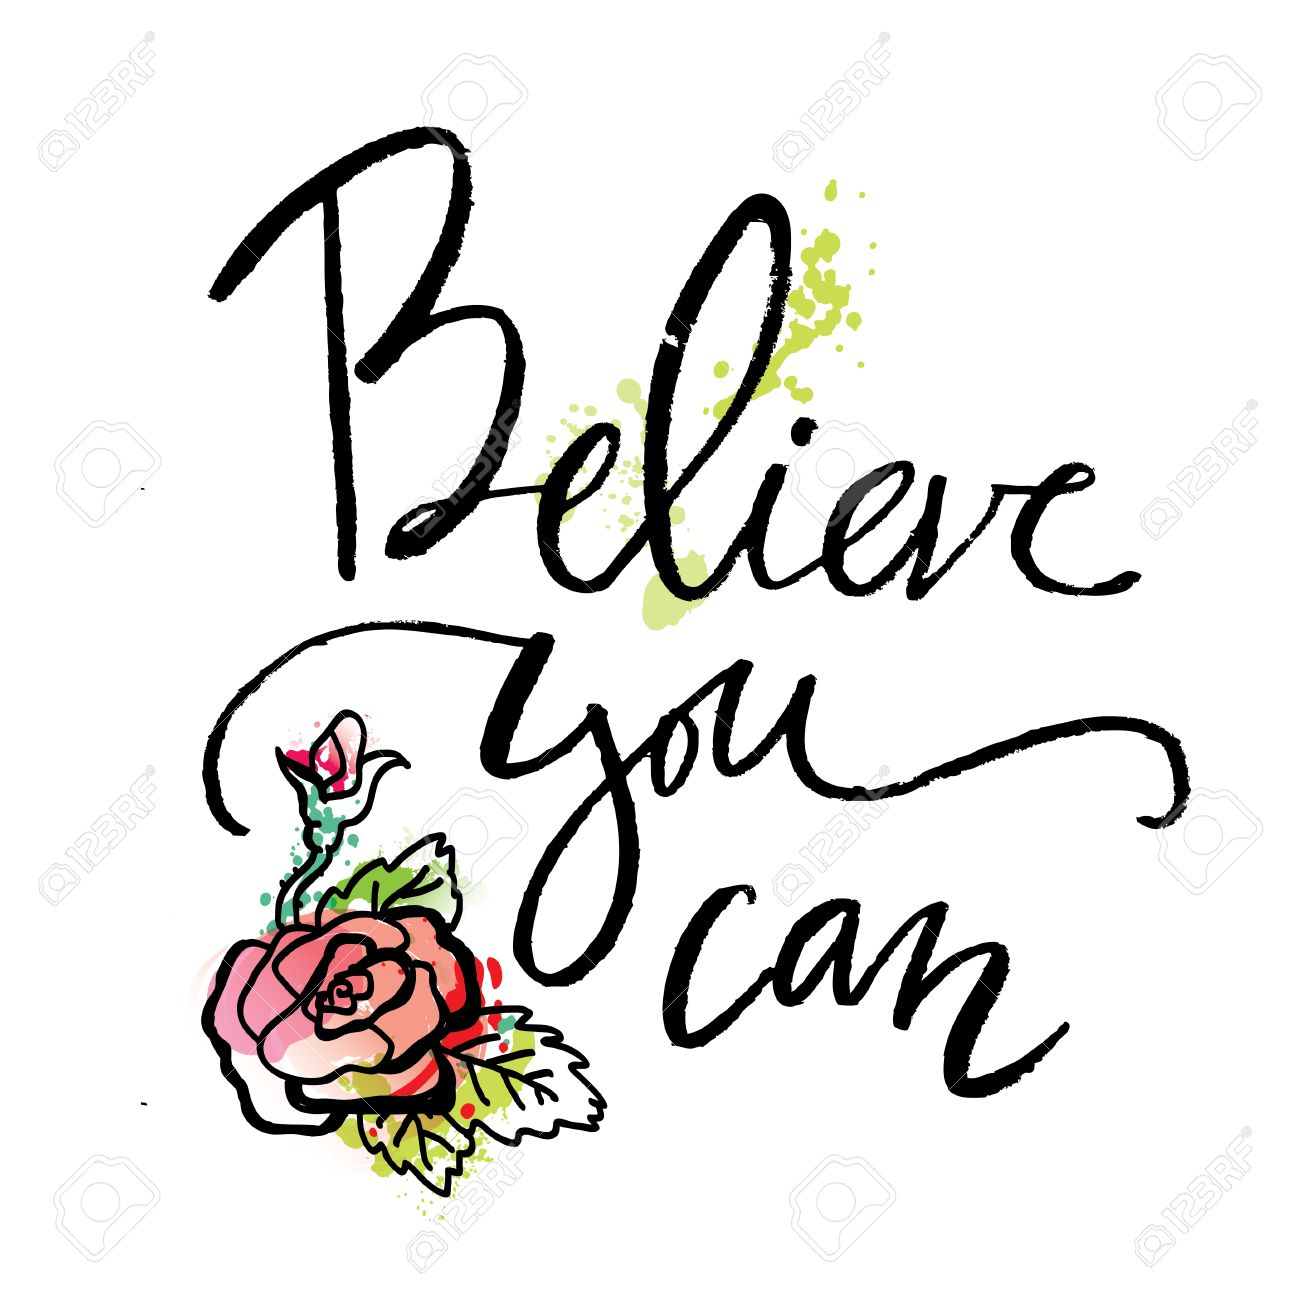 Believe You Can. Inspirational And Motivational Quotes. Hand Painted Brush  Lettering. Hand Lettering